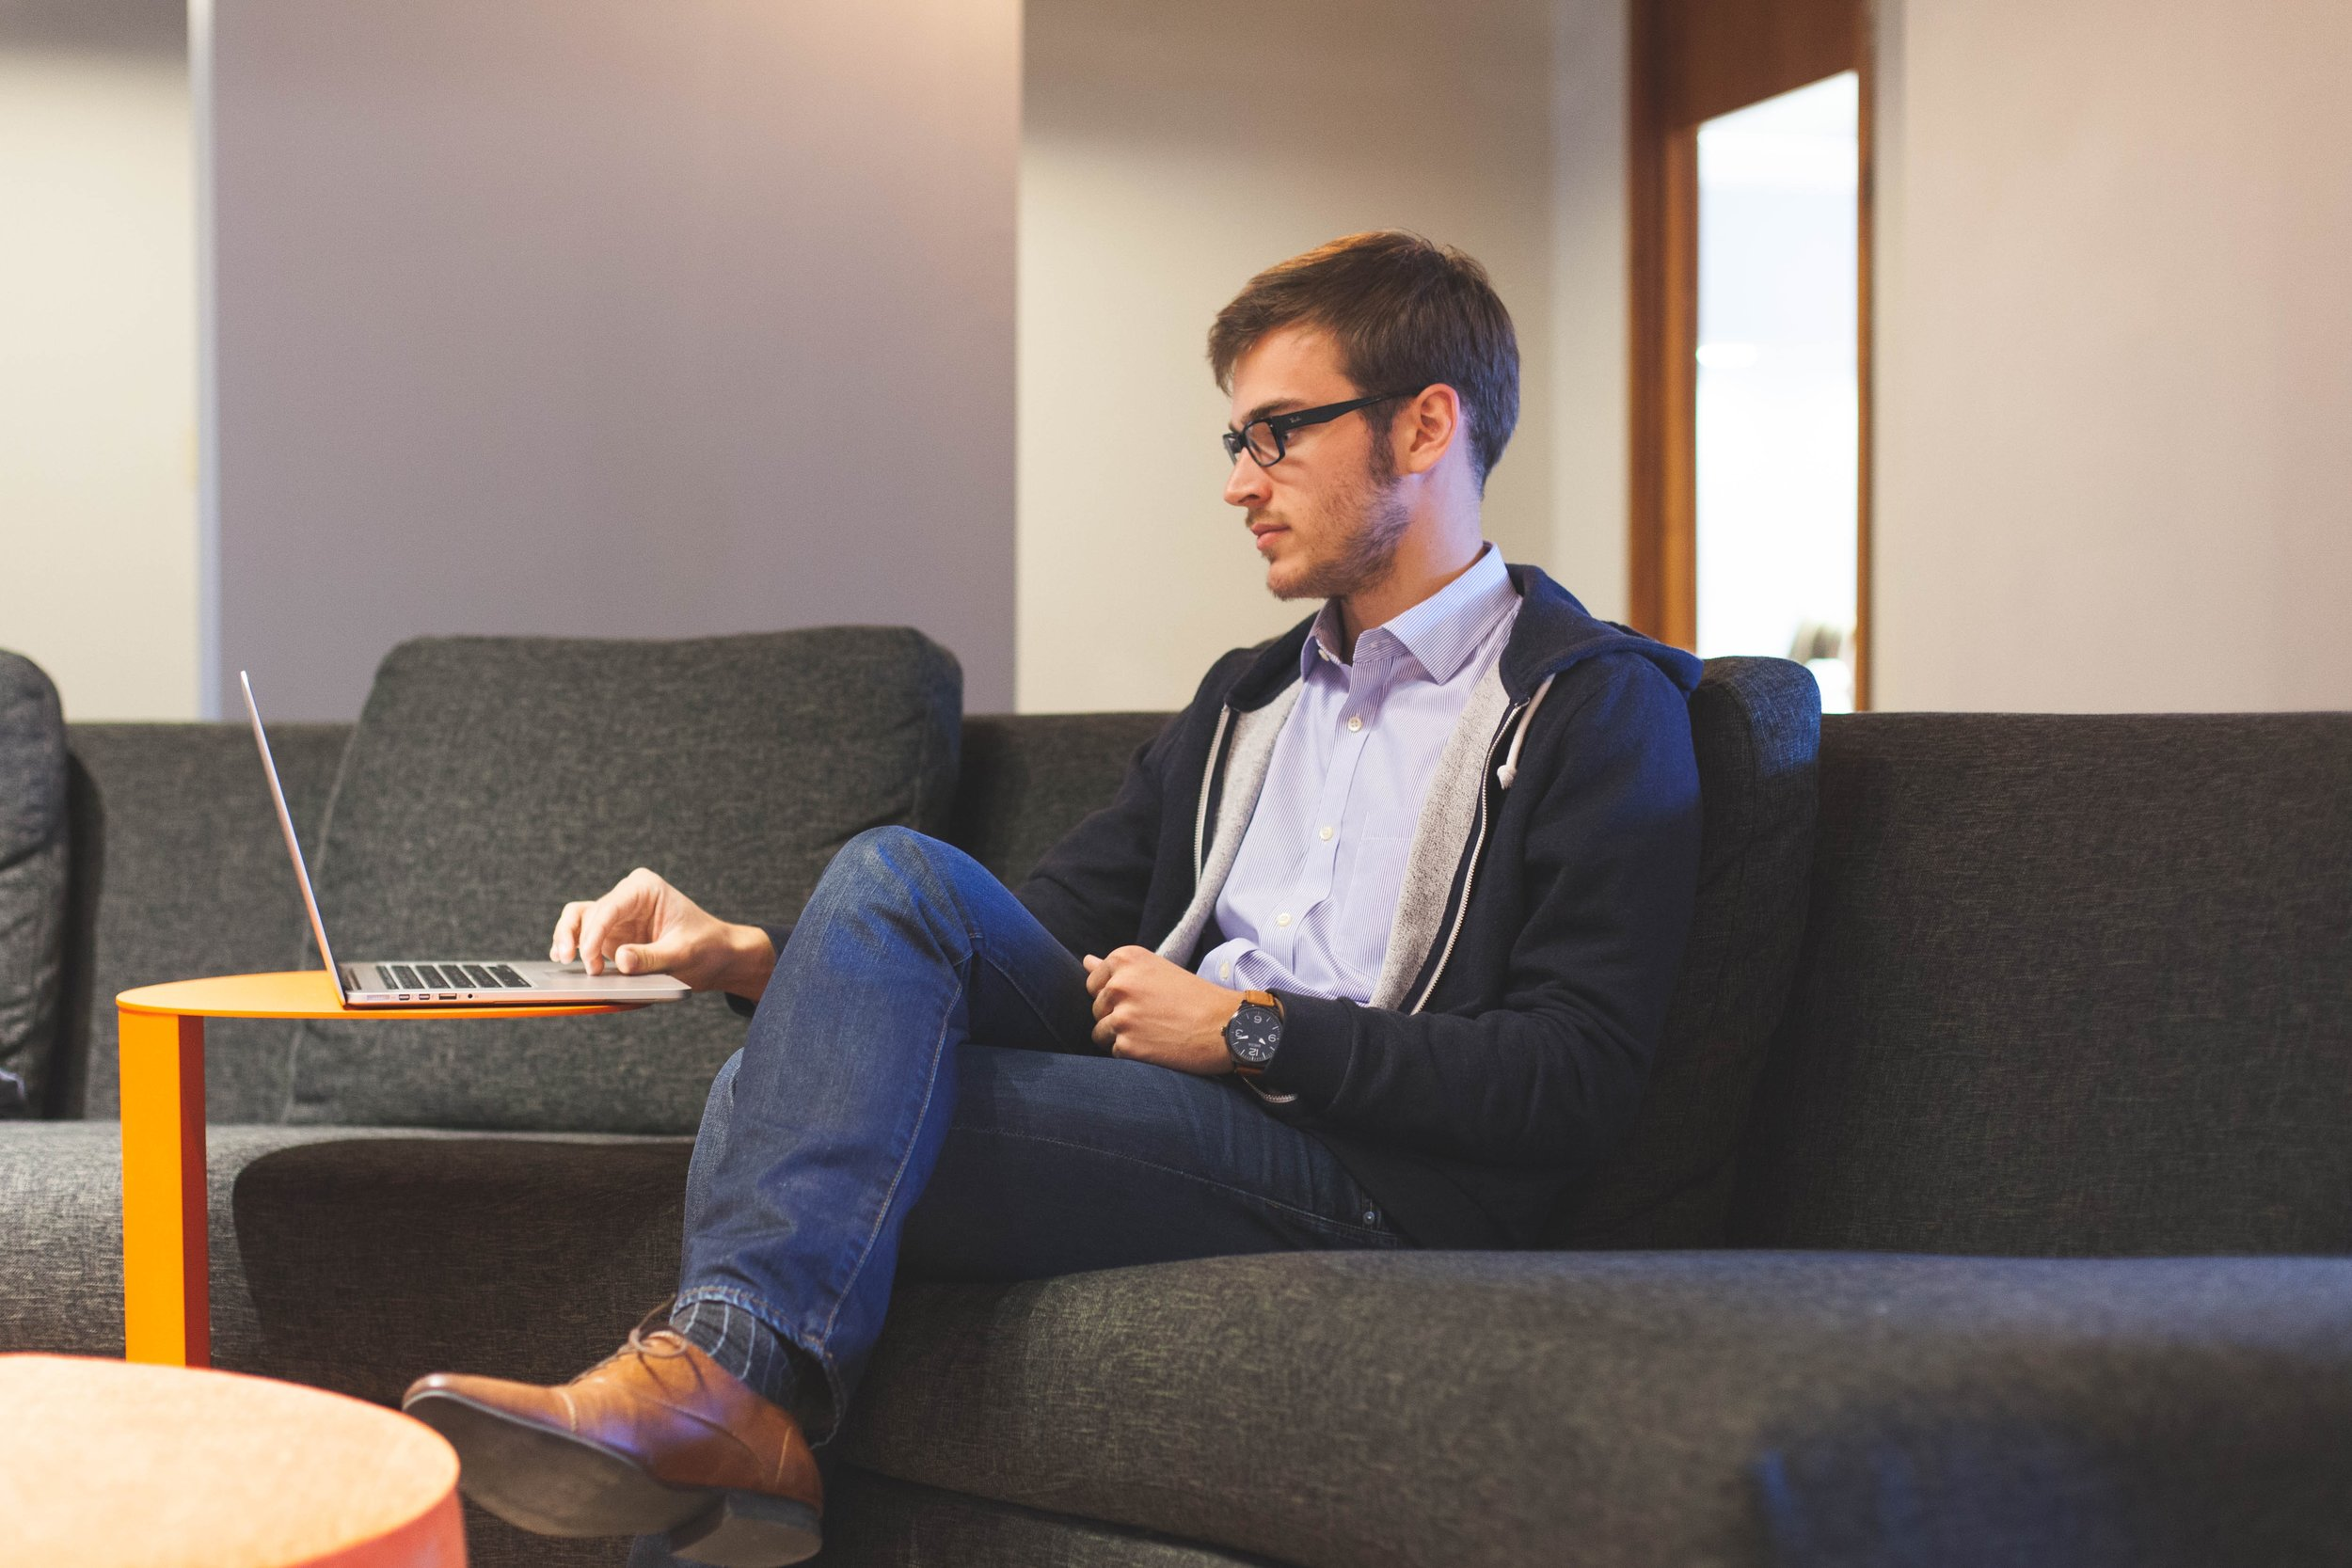 Steve is pictured sitting in the office lounge and is catching on the workshop he missed by completing the online course.